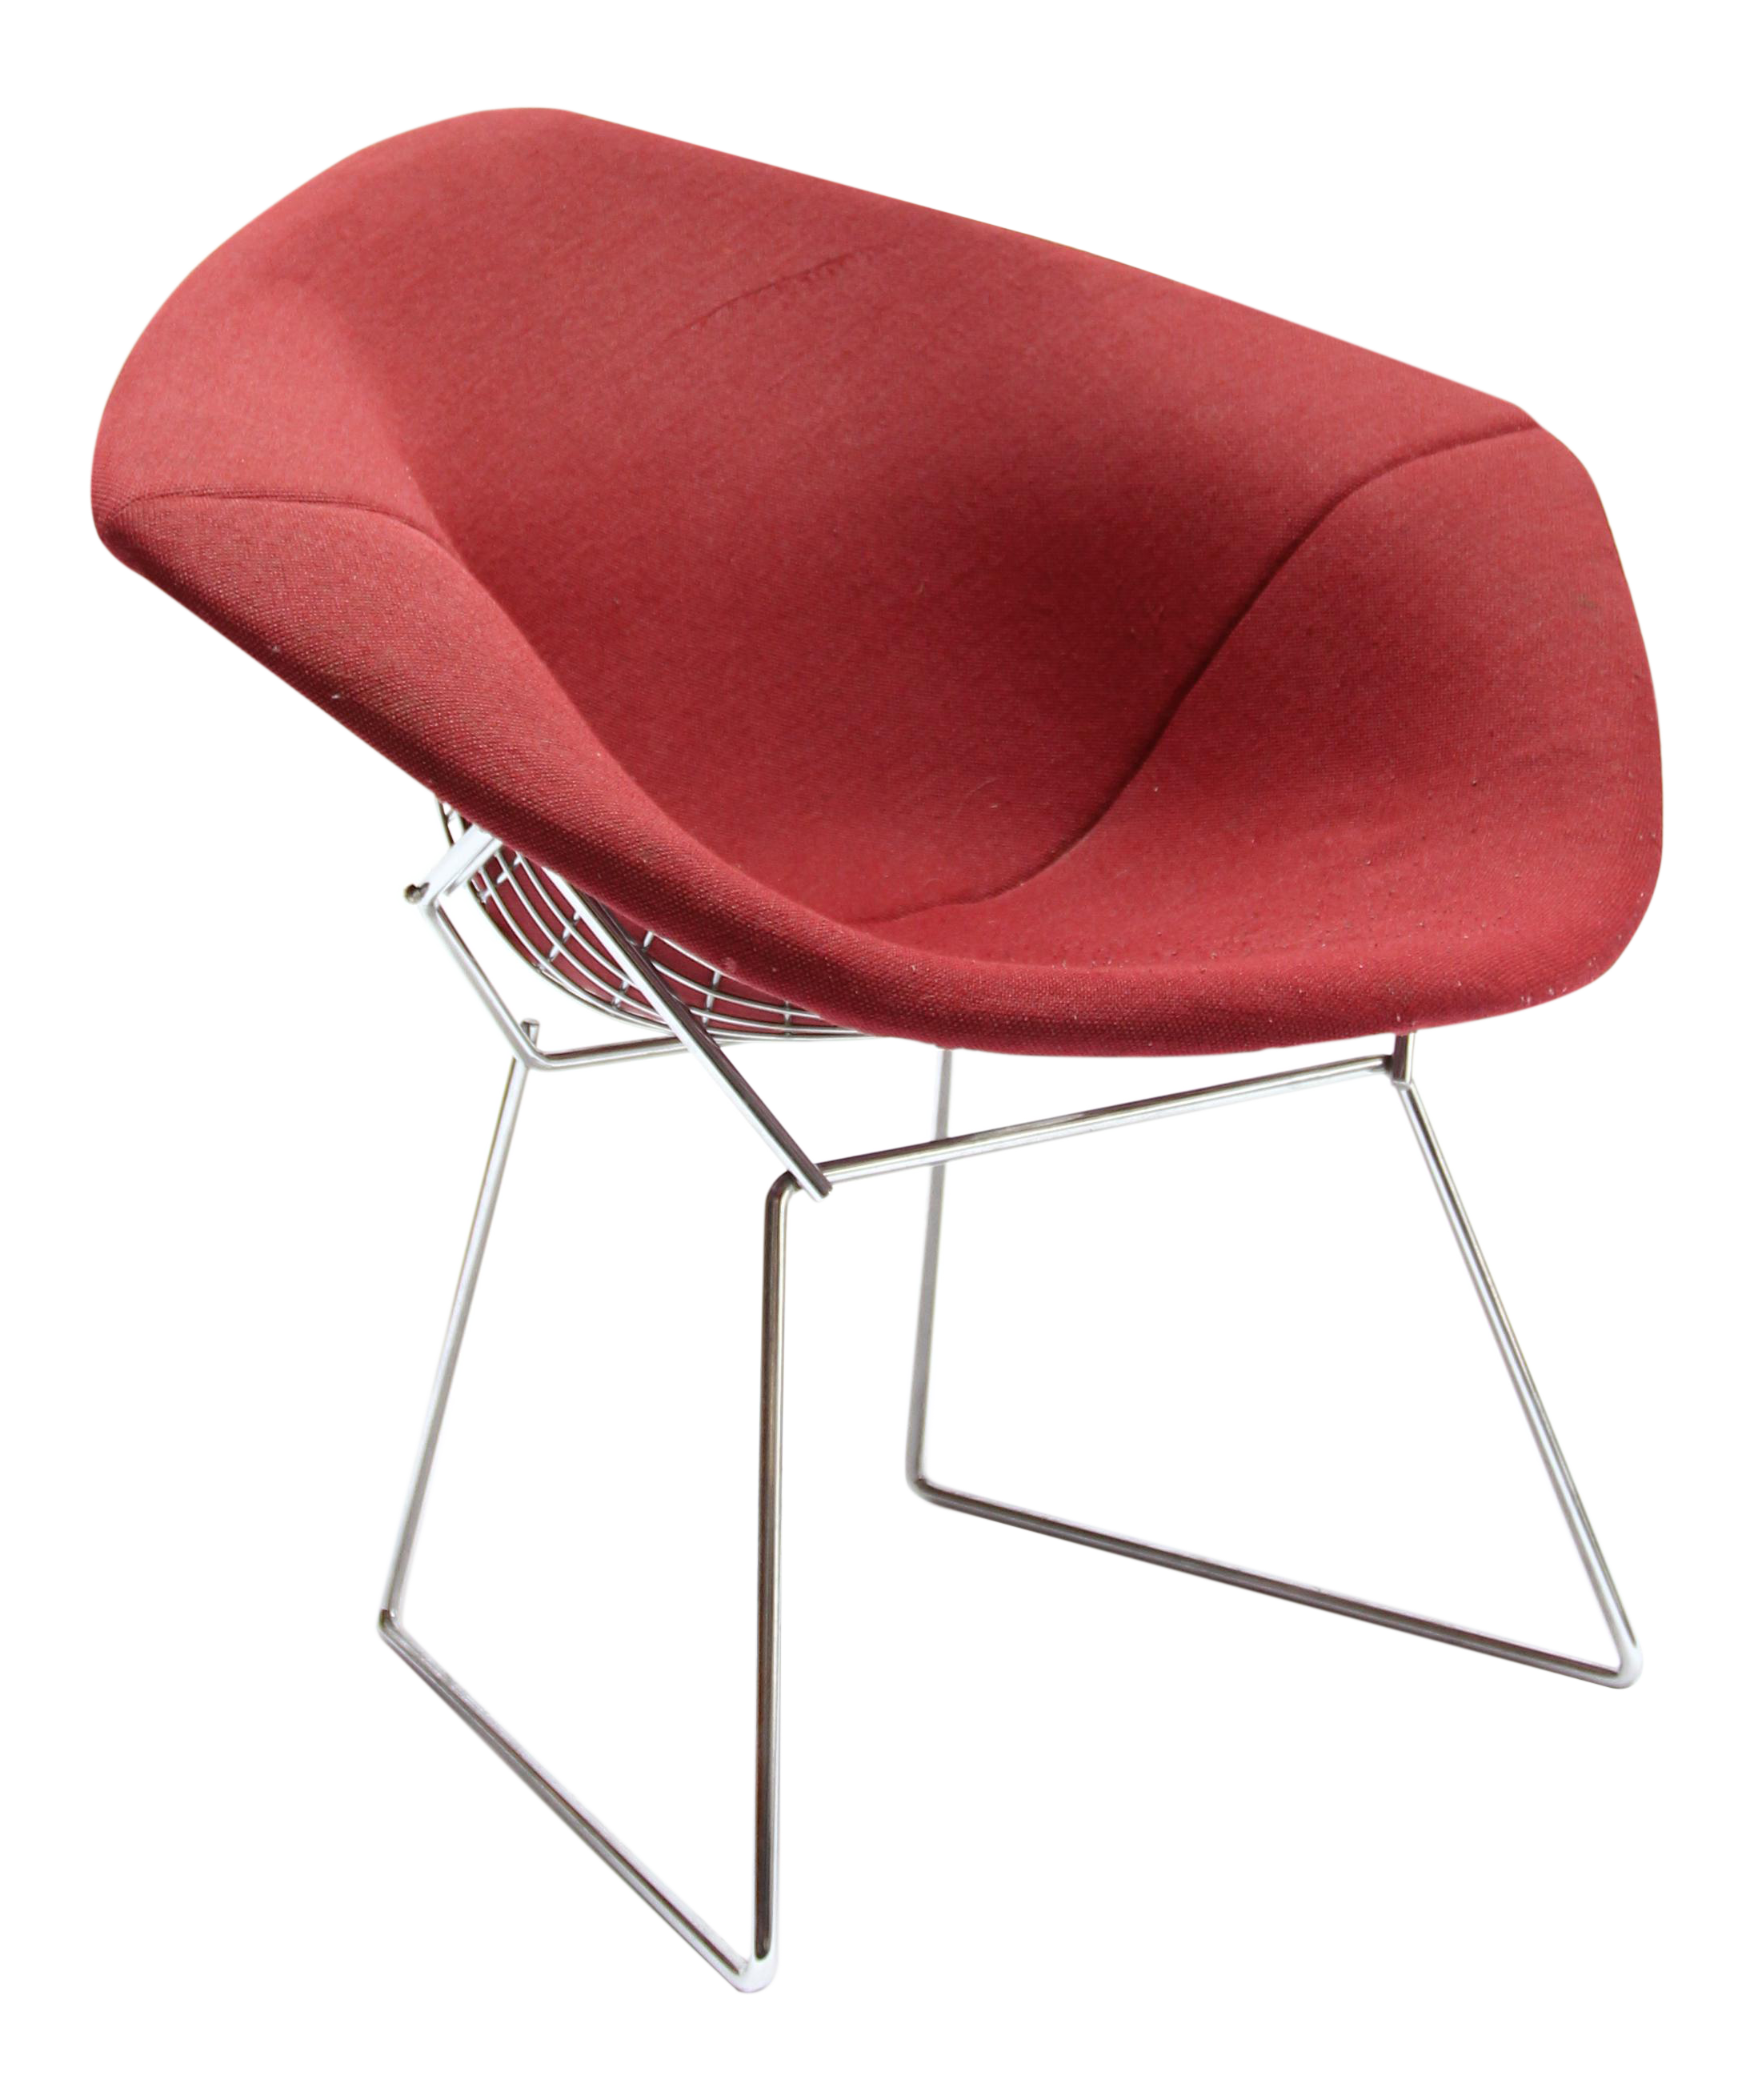 Bertoia diamond chair vintage - Image Of Vintage Knoll Bertoia Diamond Chair